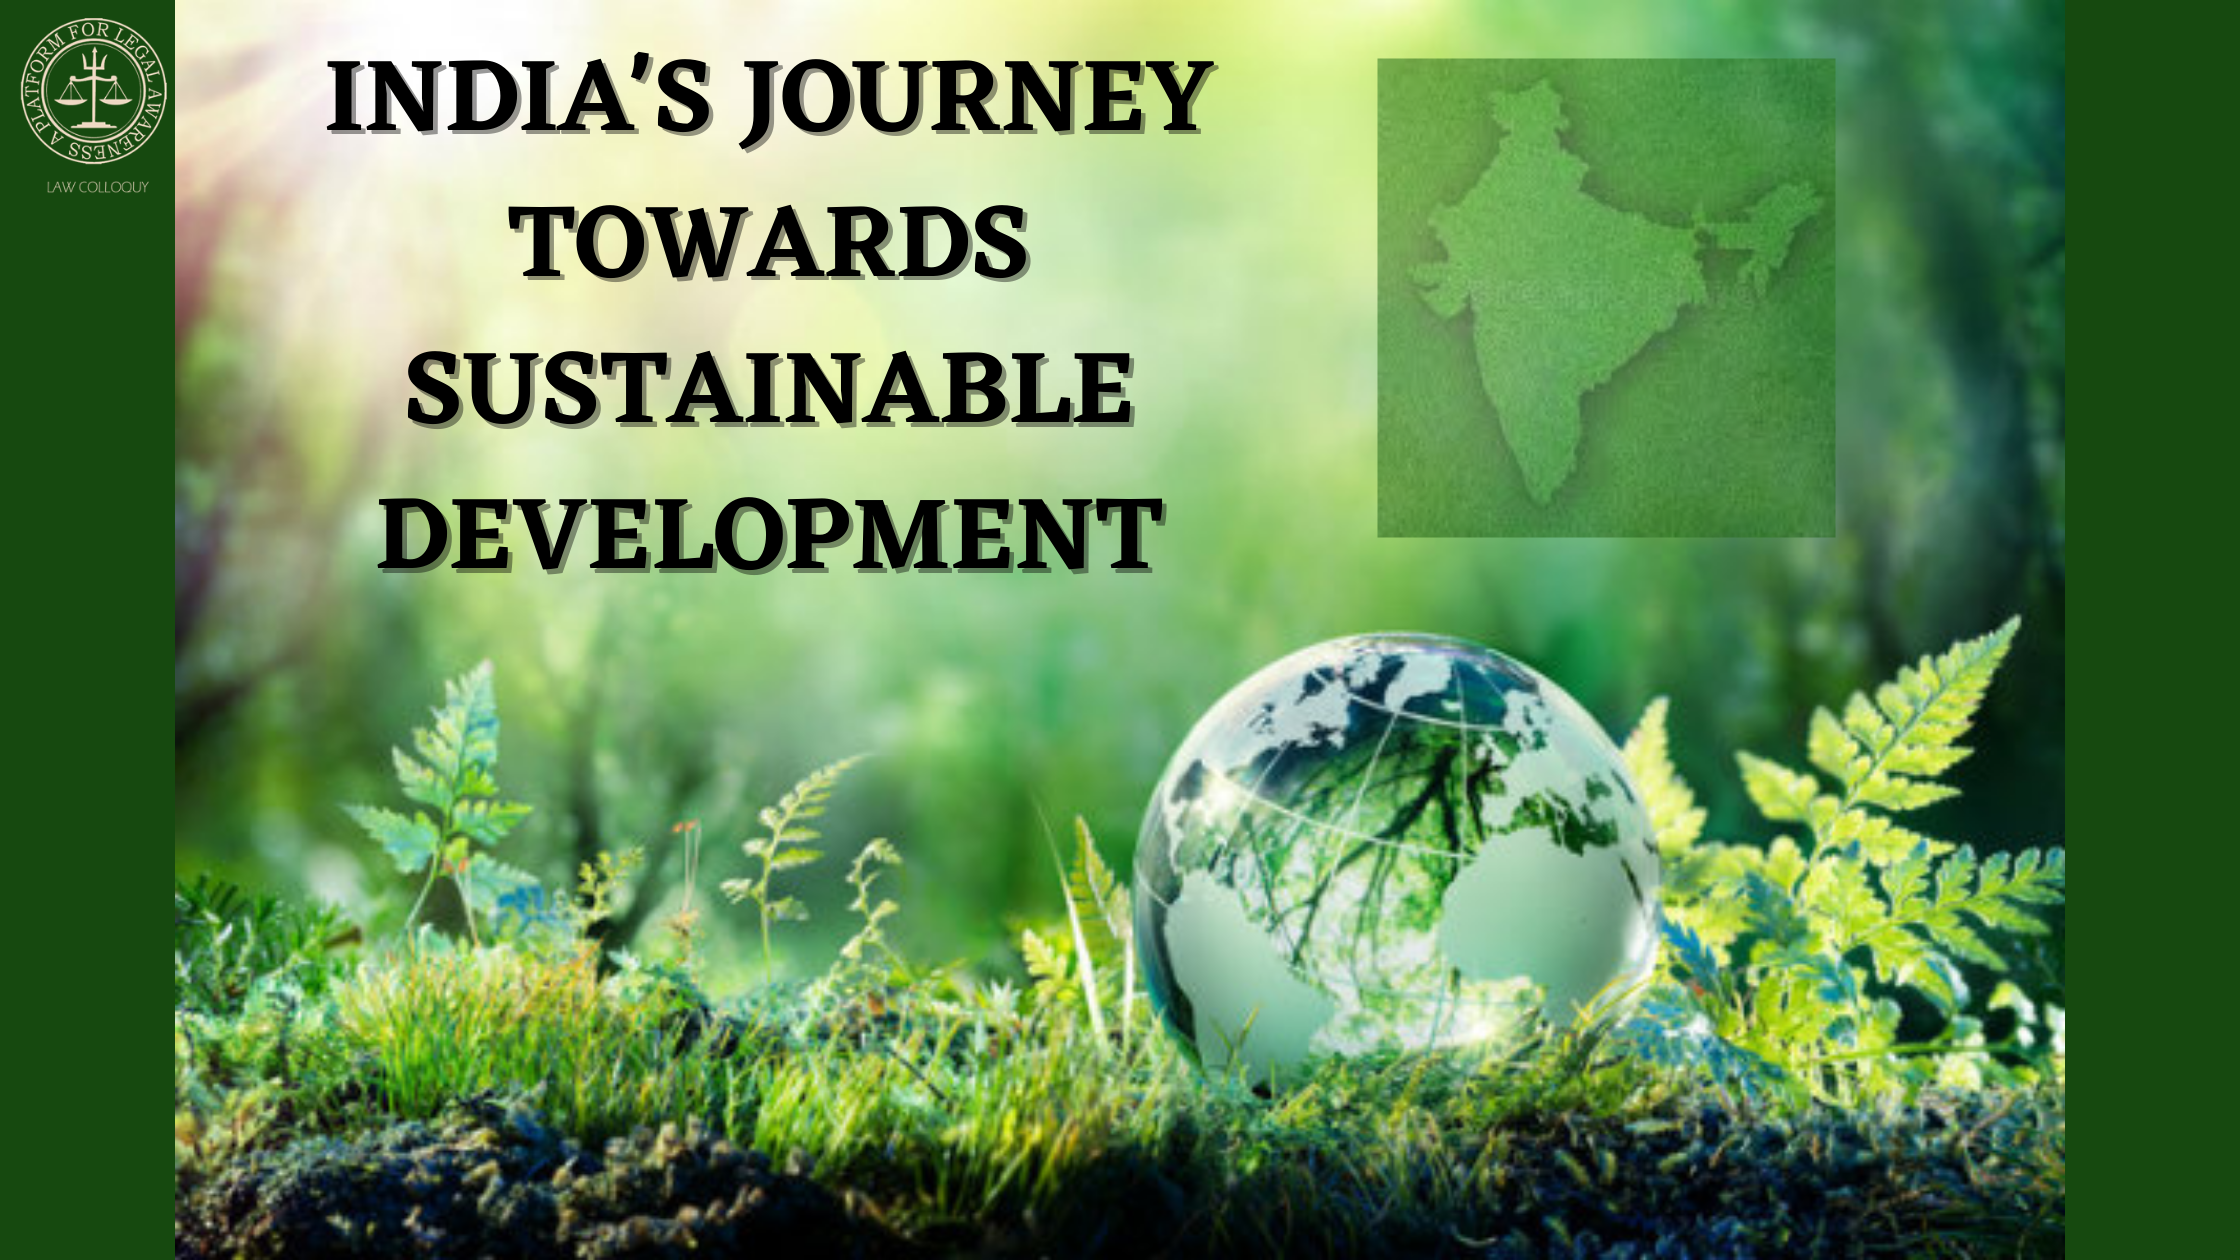 INDIA'S JOURNEY TOWARDS SUSTAINABLE DEVELOPMENT